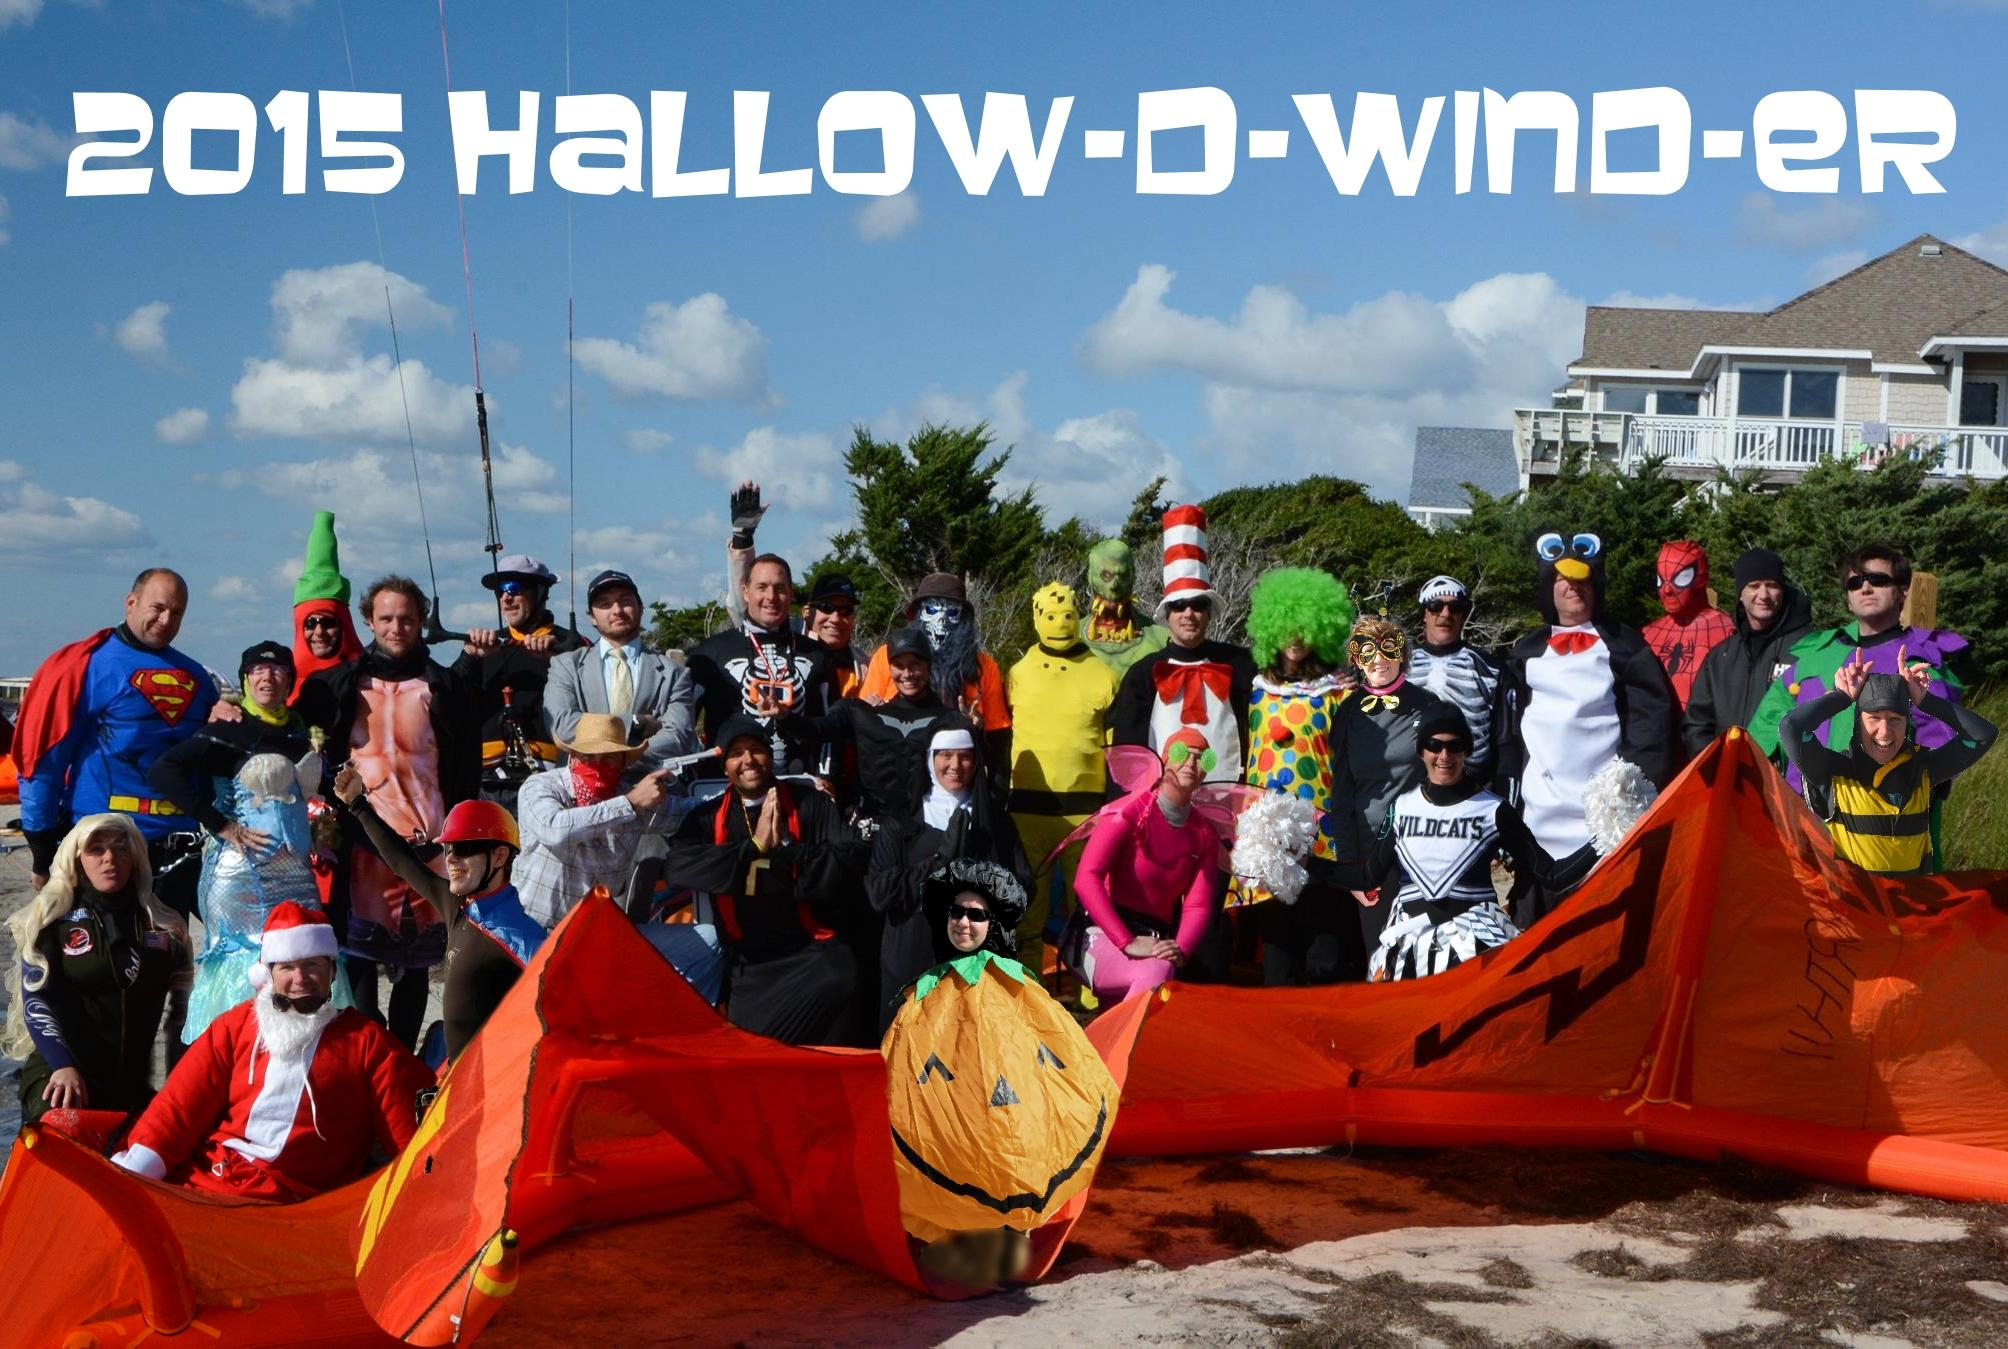 OBX October Halloween Downwinder!